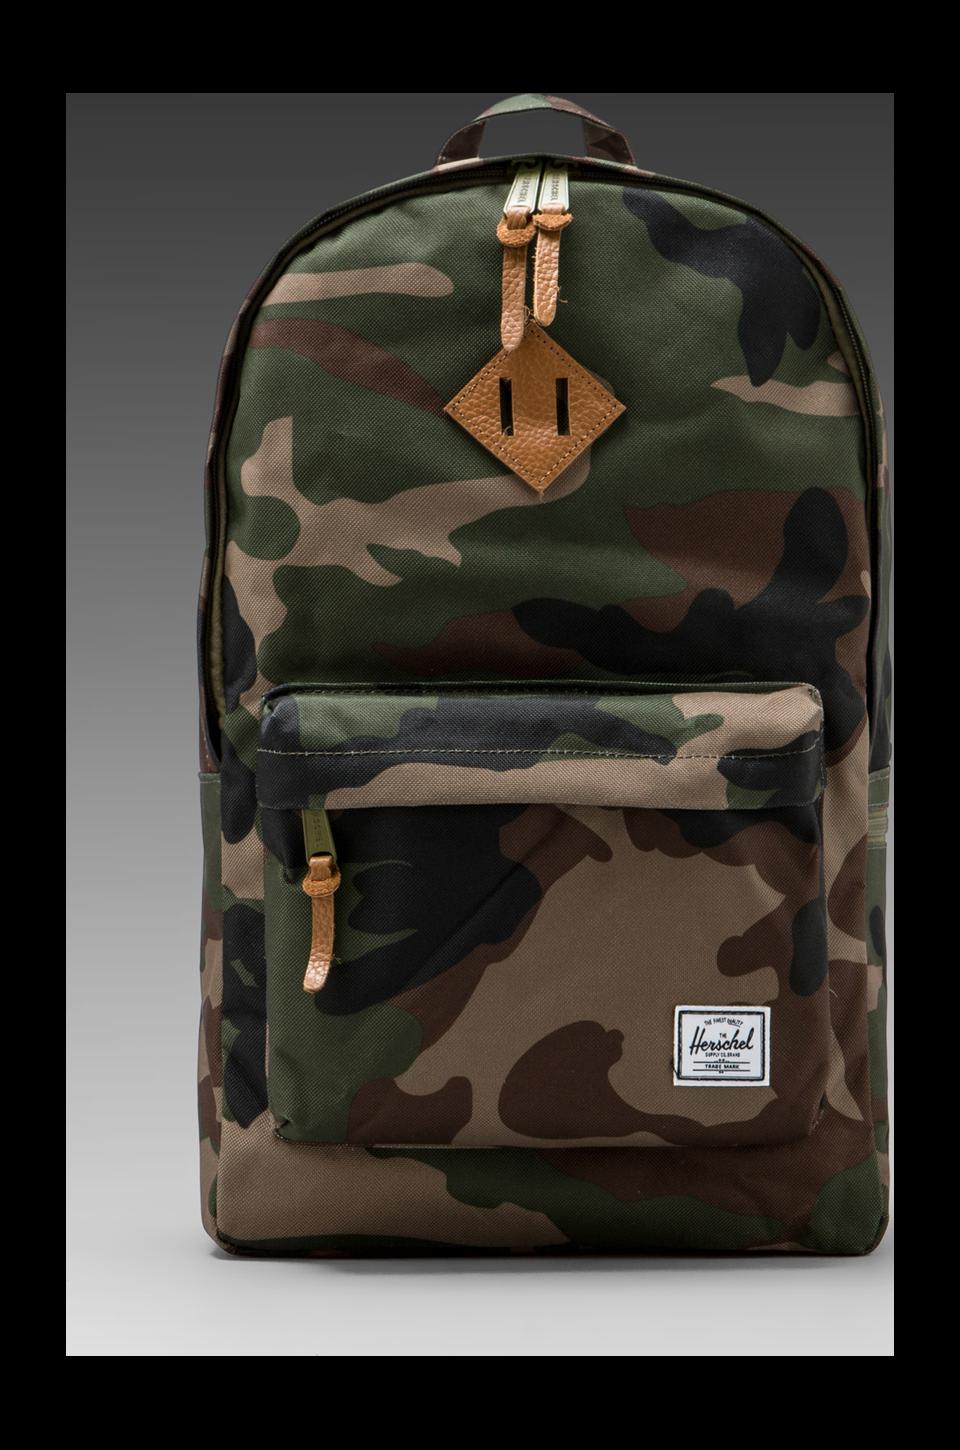 Herschel Supply Co. Heritage Plus Backpack in Woodland Camo